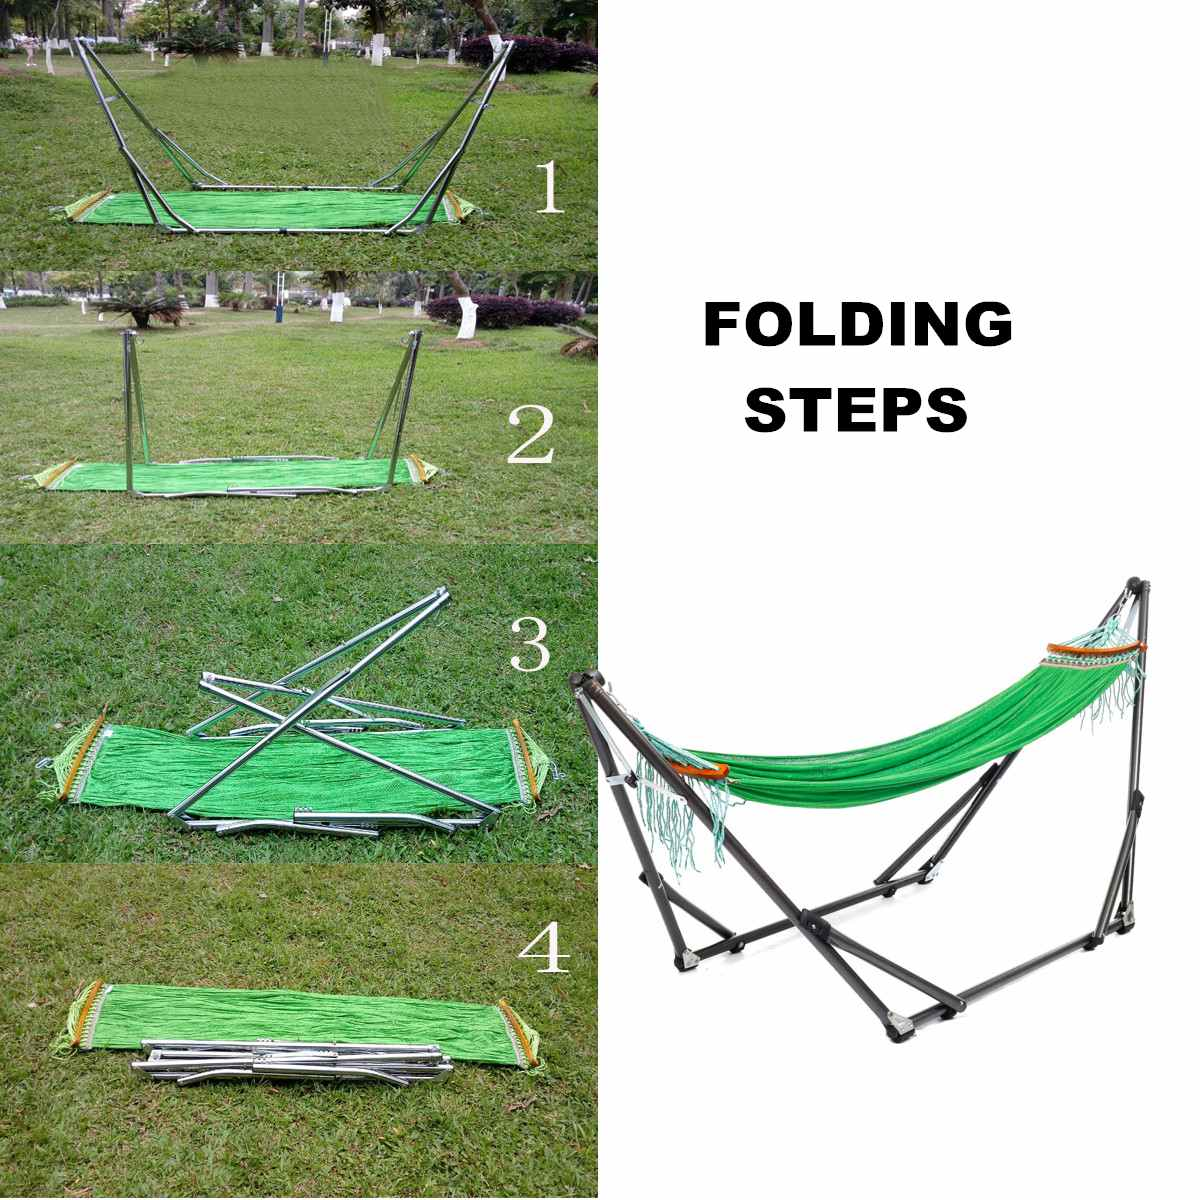 Folding Hammock Stand Bag Set 250KG Portable Steel Pipe Sleeping Swing Garden Outdoor Furniture Hunting Camping Accessories Kit - 2